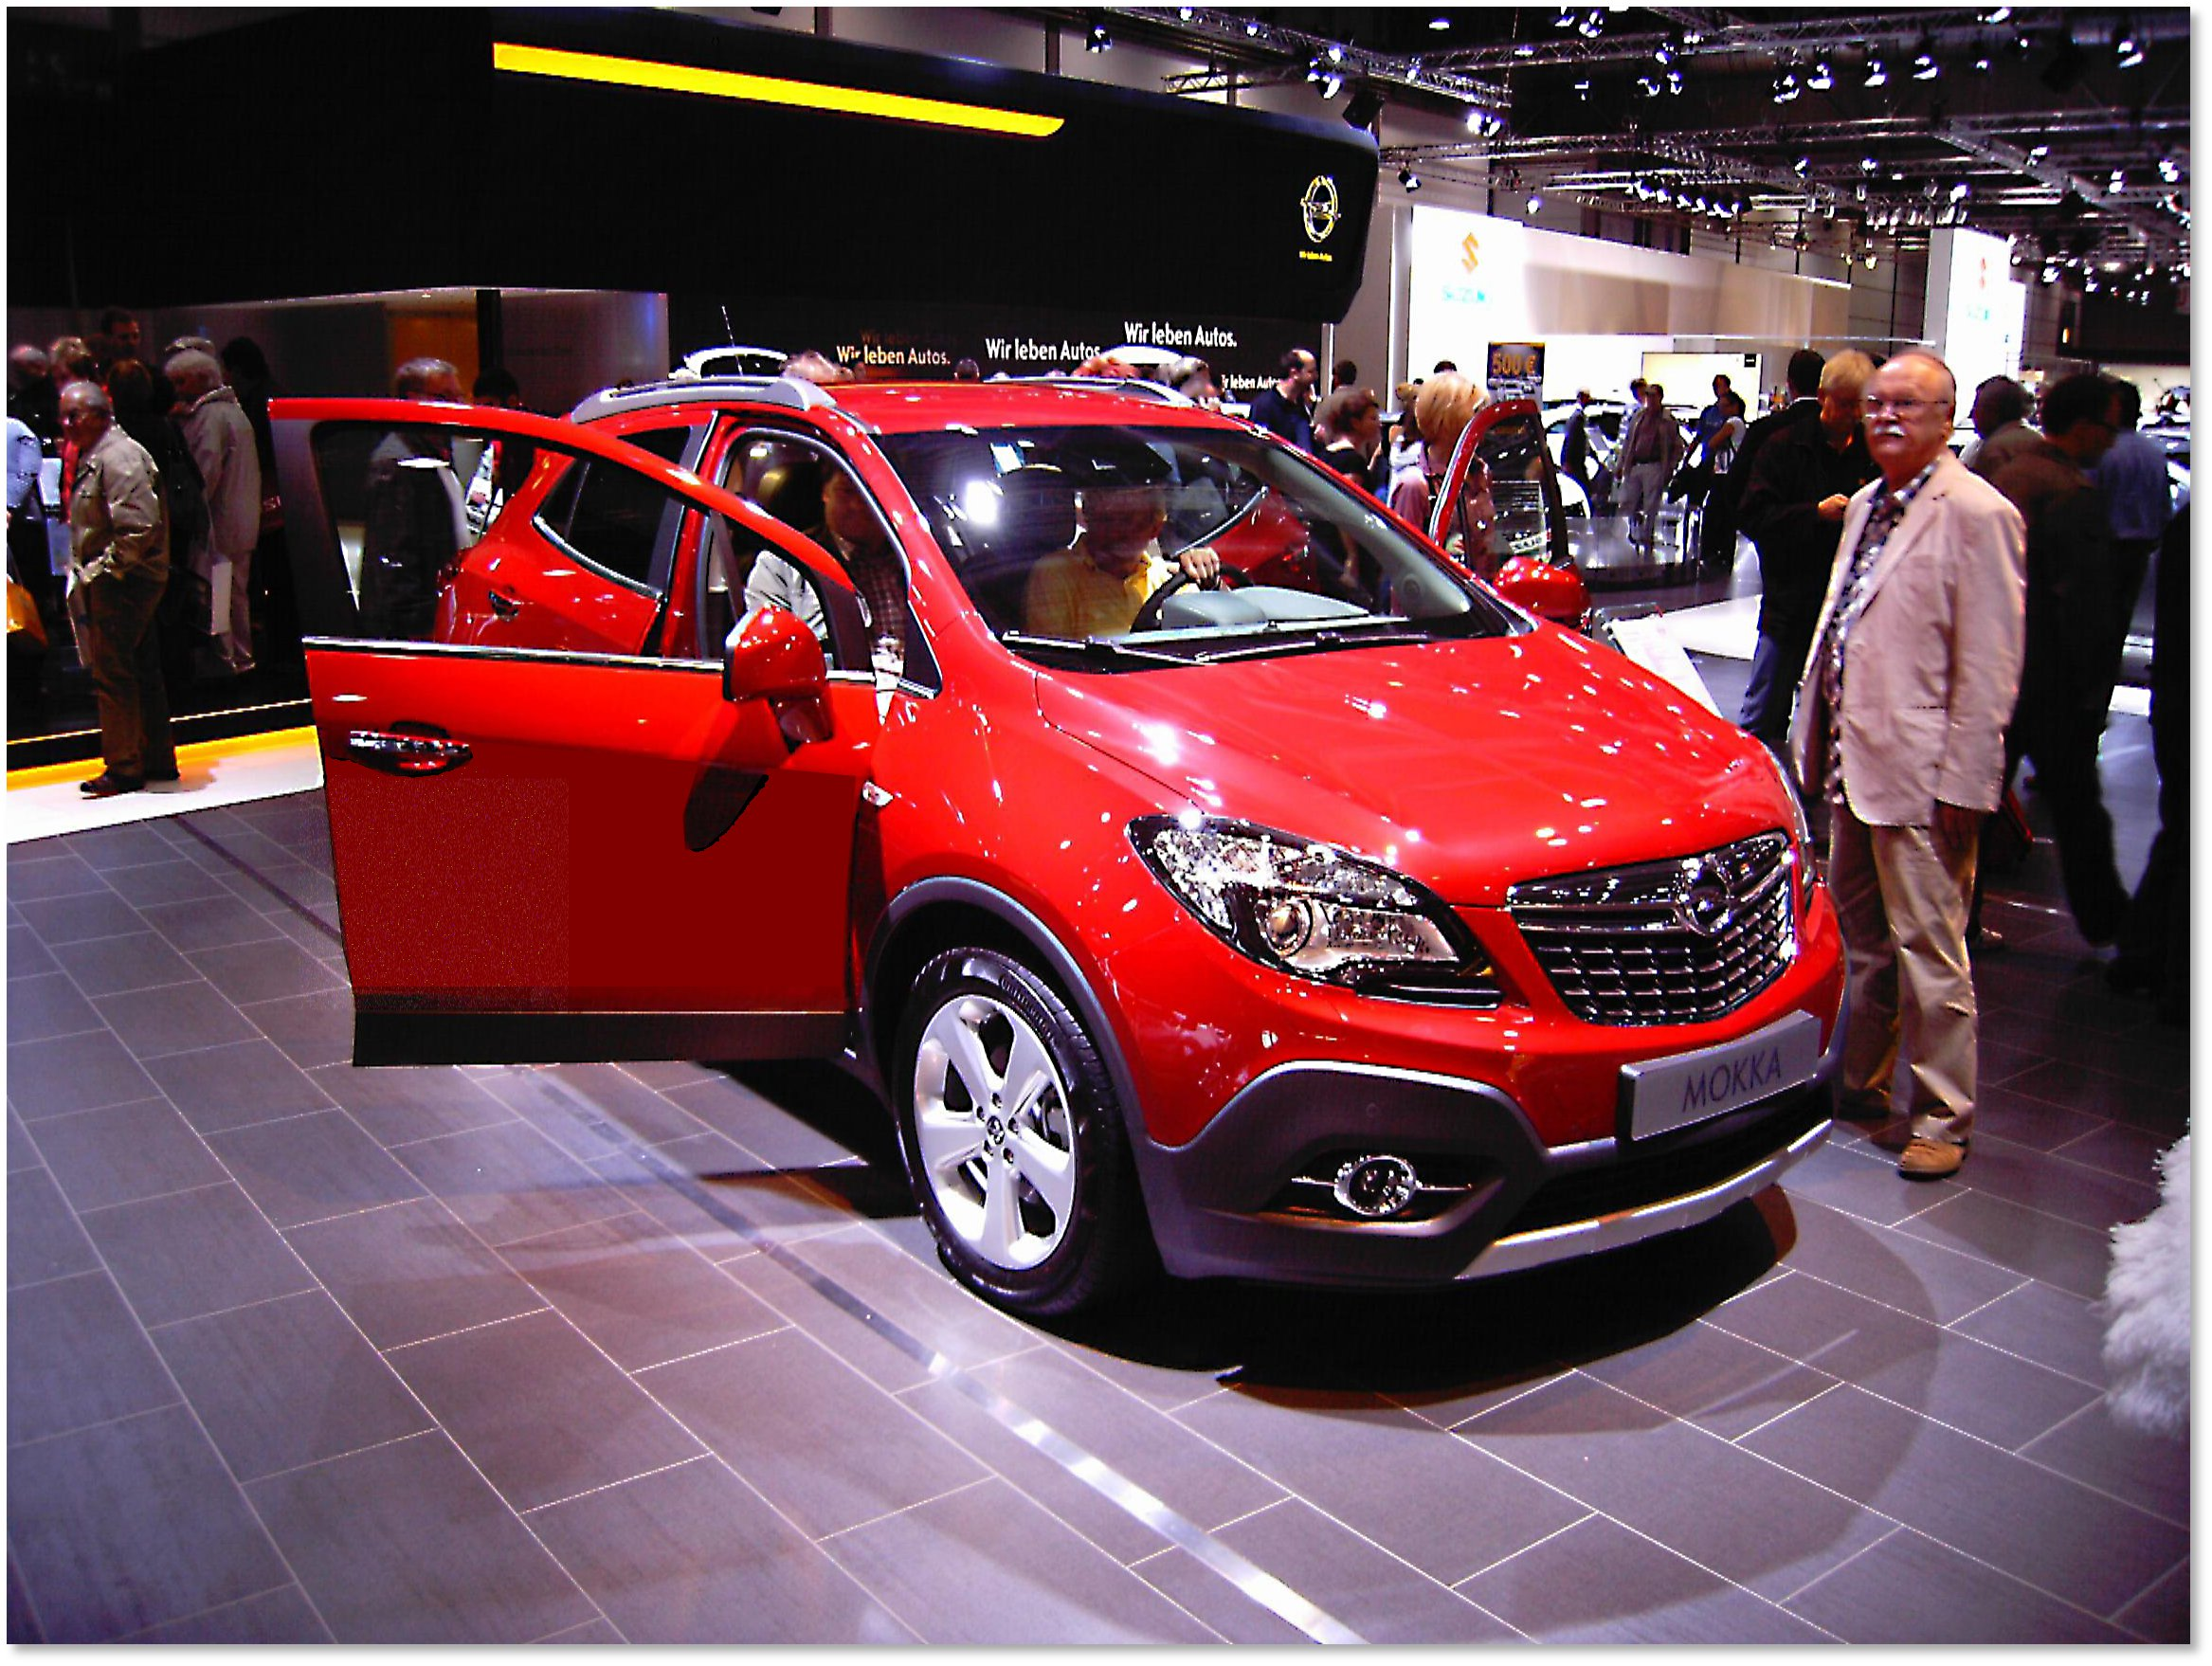 Illustration : OPEL - MOKKA 1.7 CDTI 130 EDITION